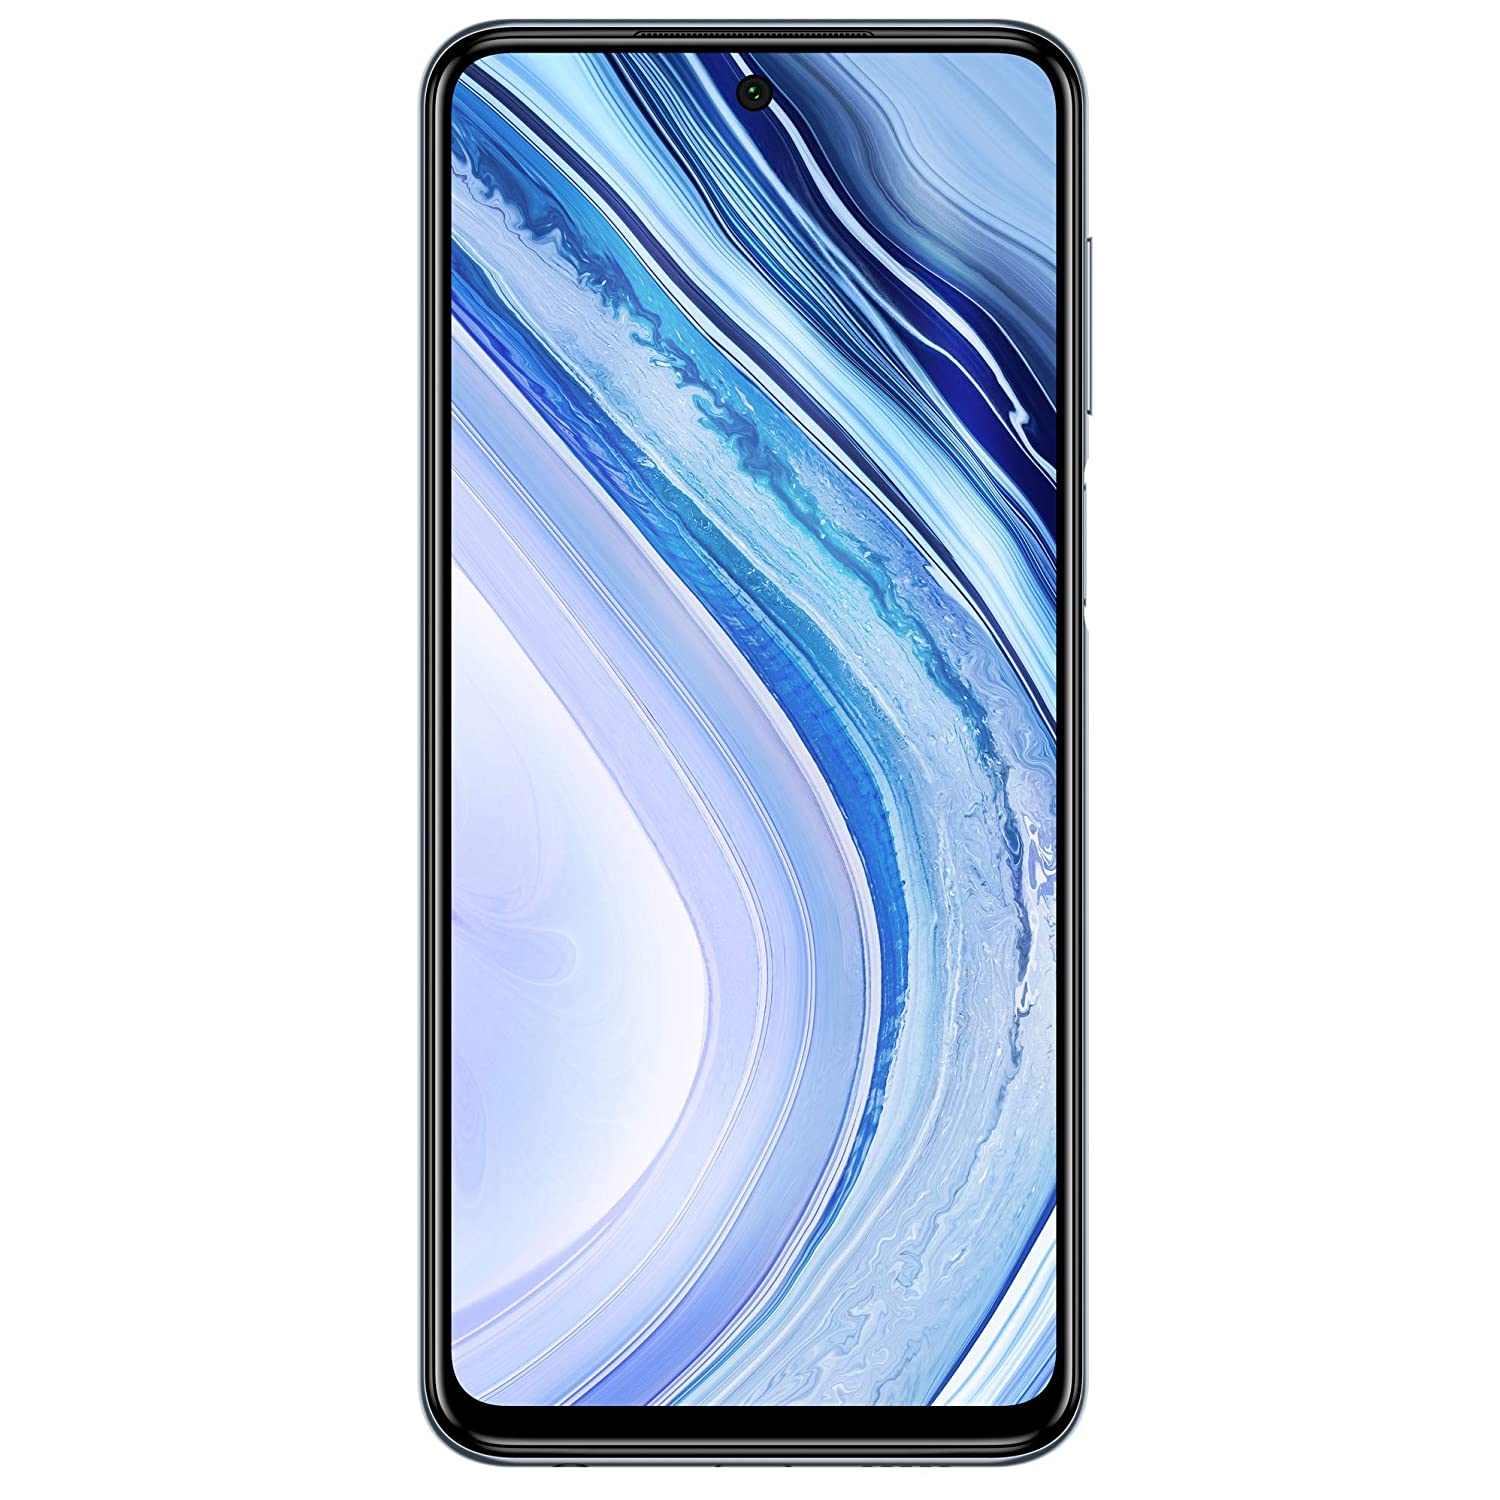 Redmi Note 9 Pro Max (Interstellar Black, 6GB RAM, 64GB Storage)